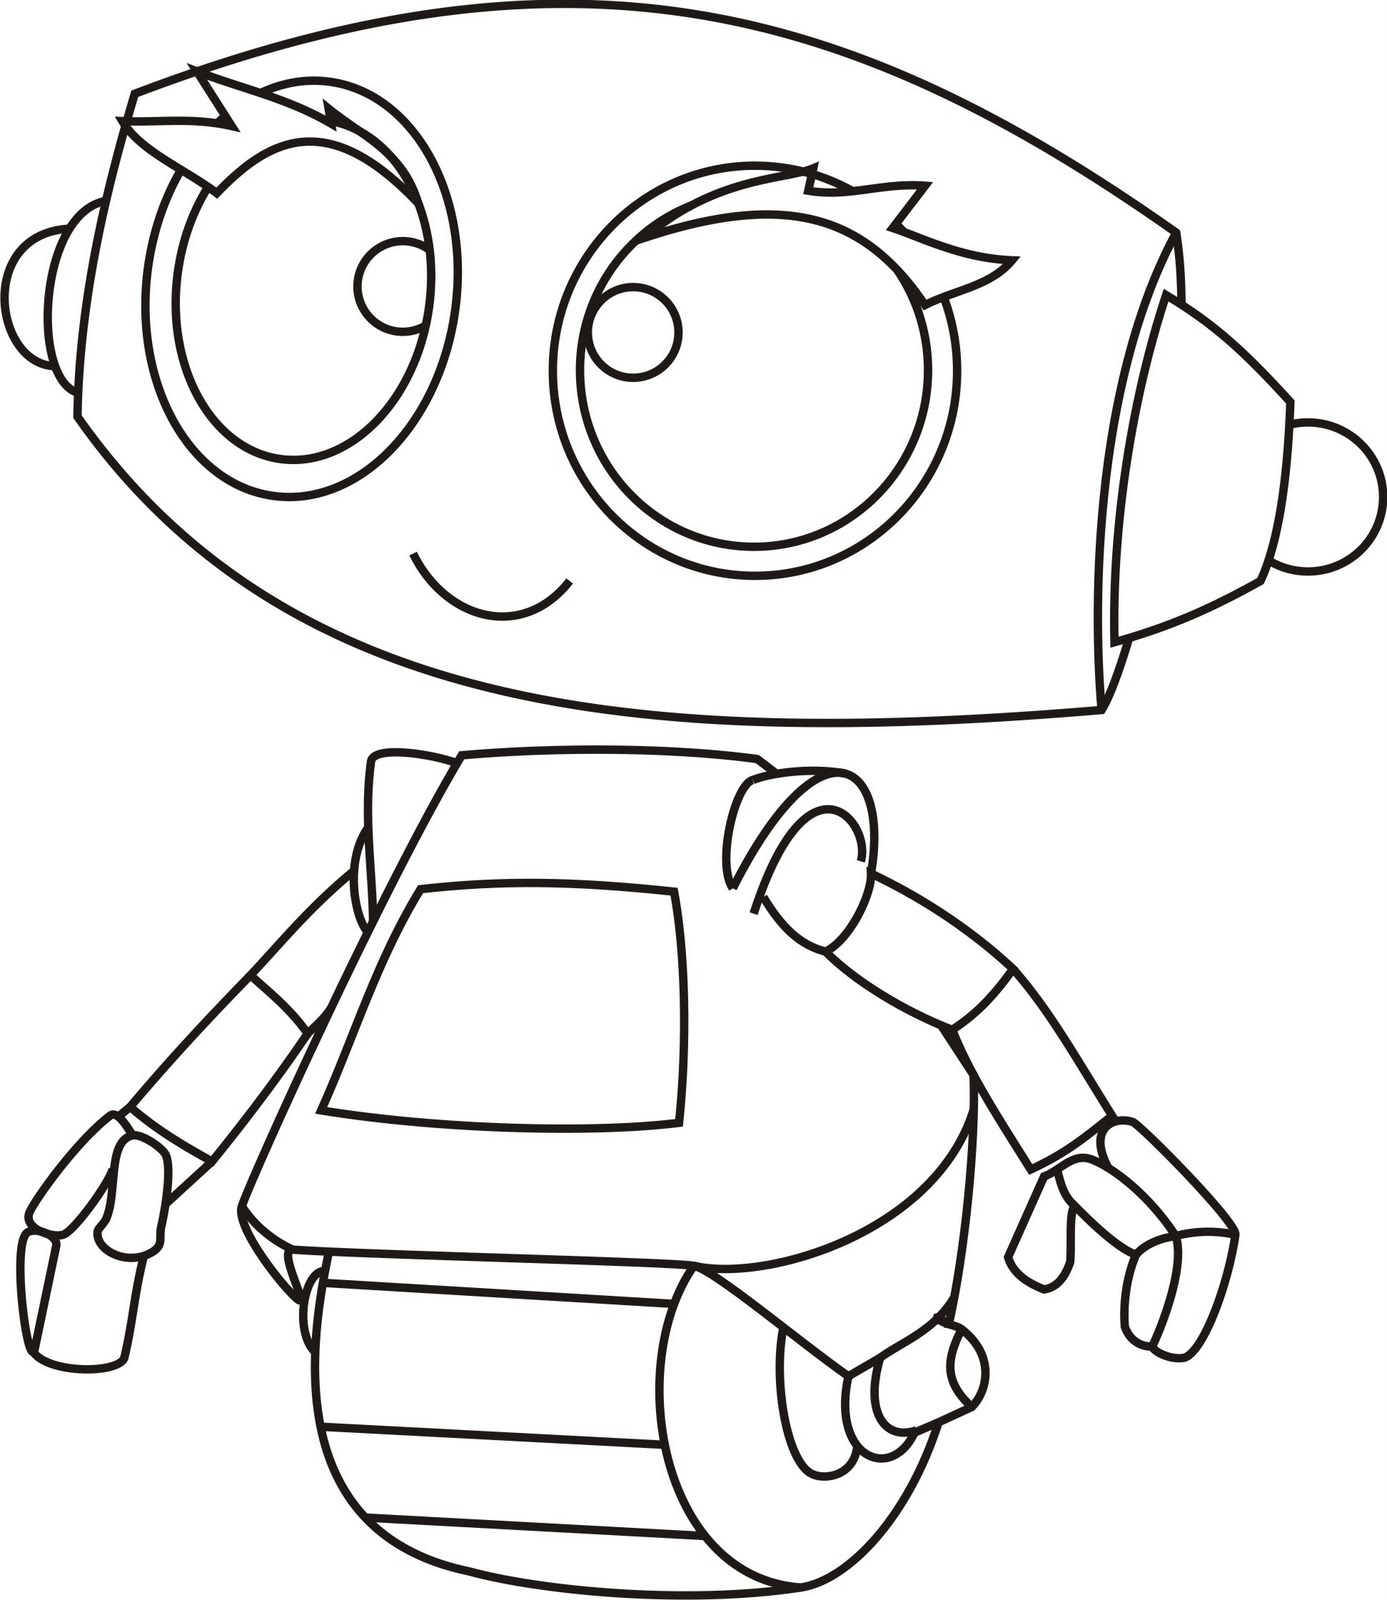 Robot Printable Coloring Pages Coloring Pages Robots